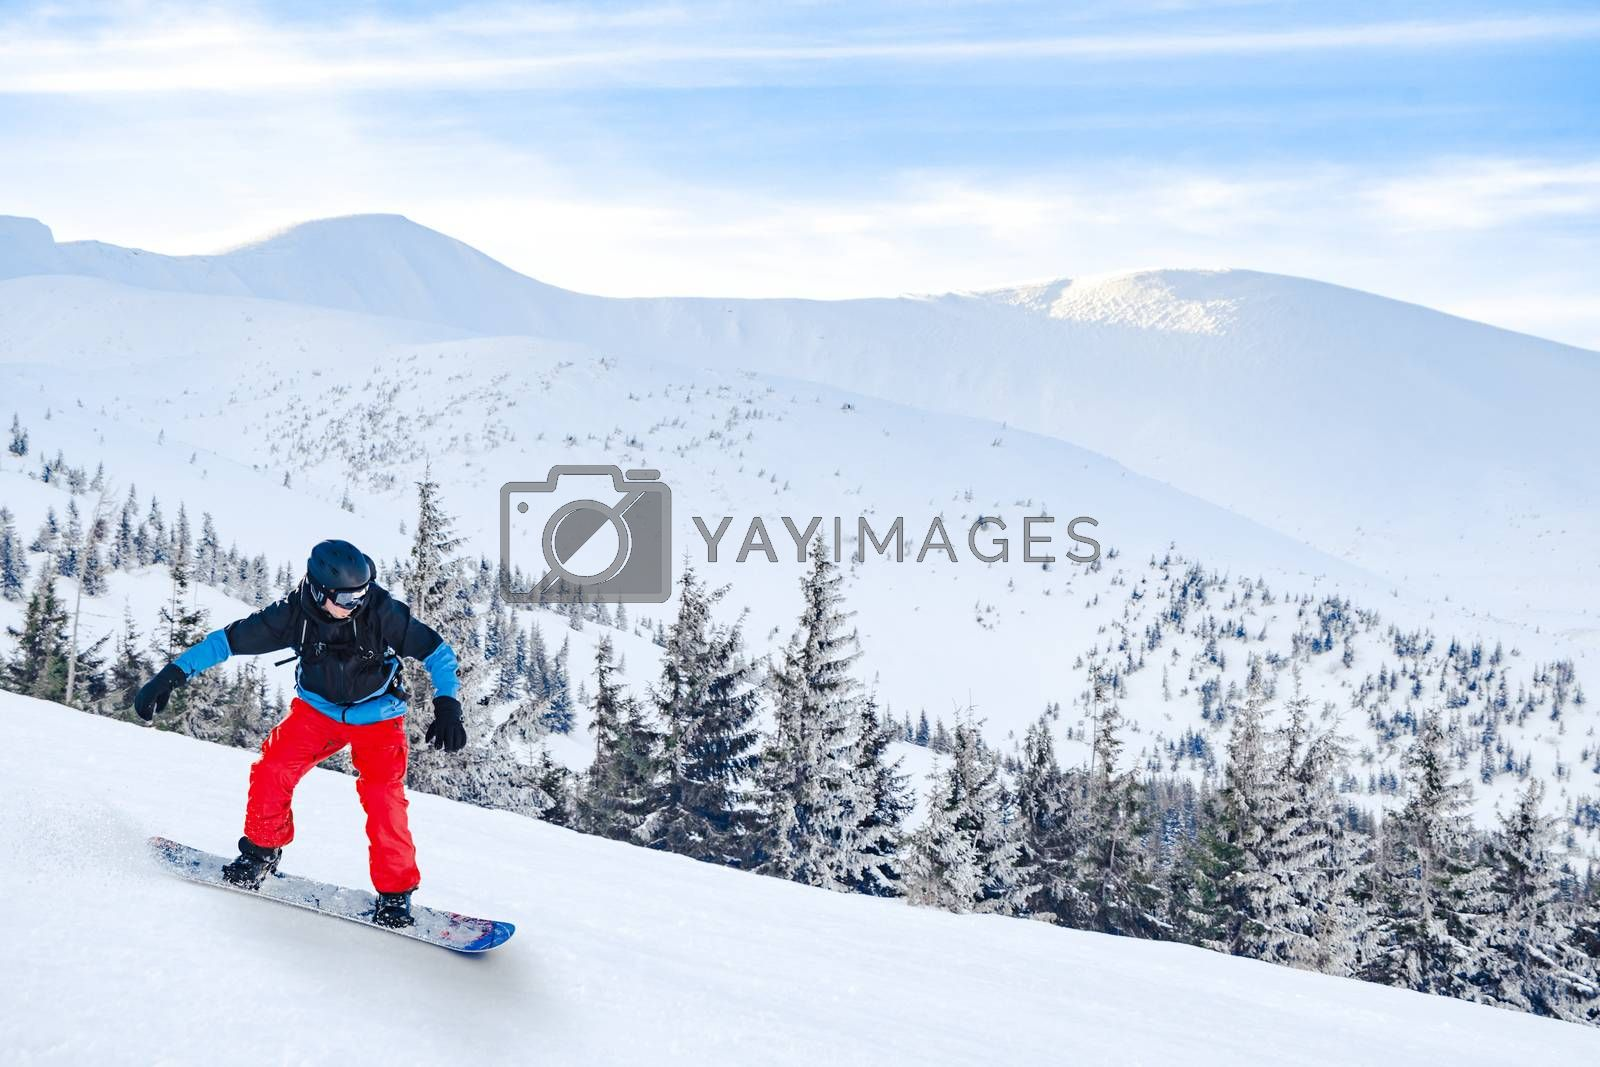 Snowboarder in Red Riding Snowboard in the Beautiful Mountains. Snowboarding and Winter Sports Concept.